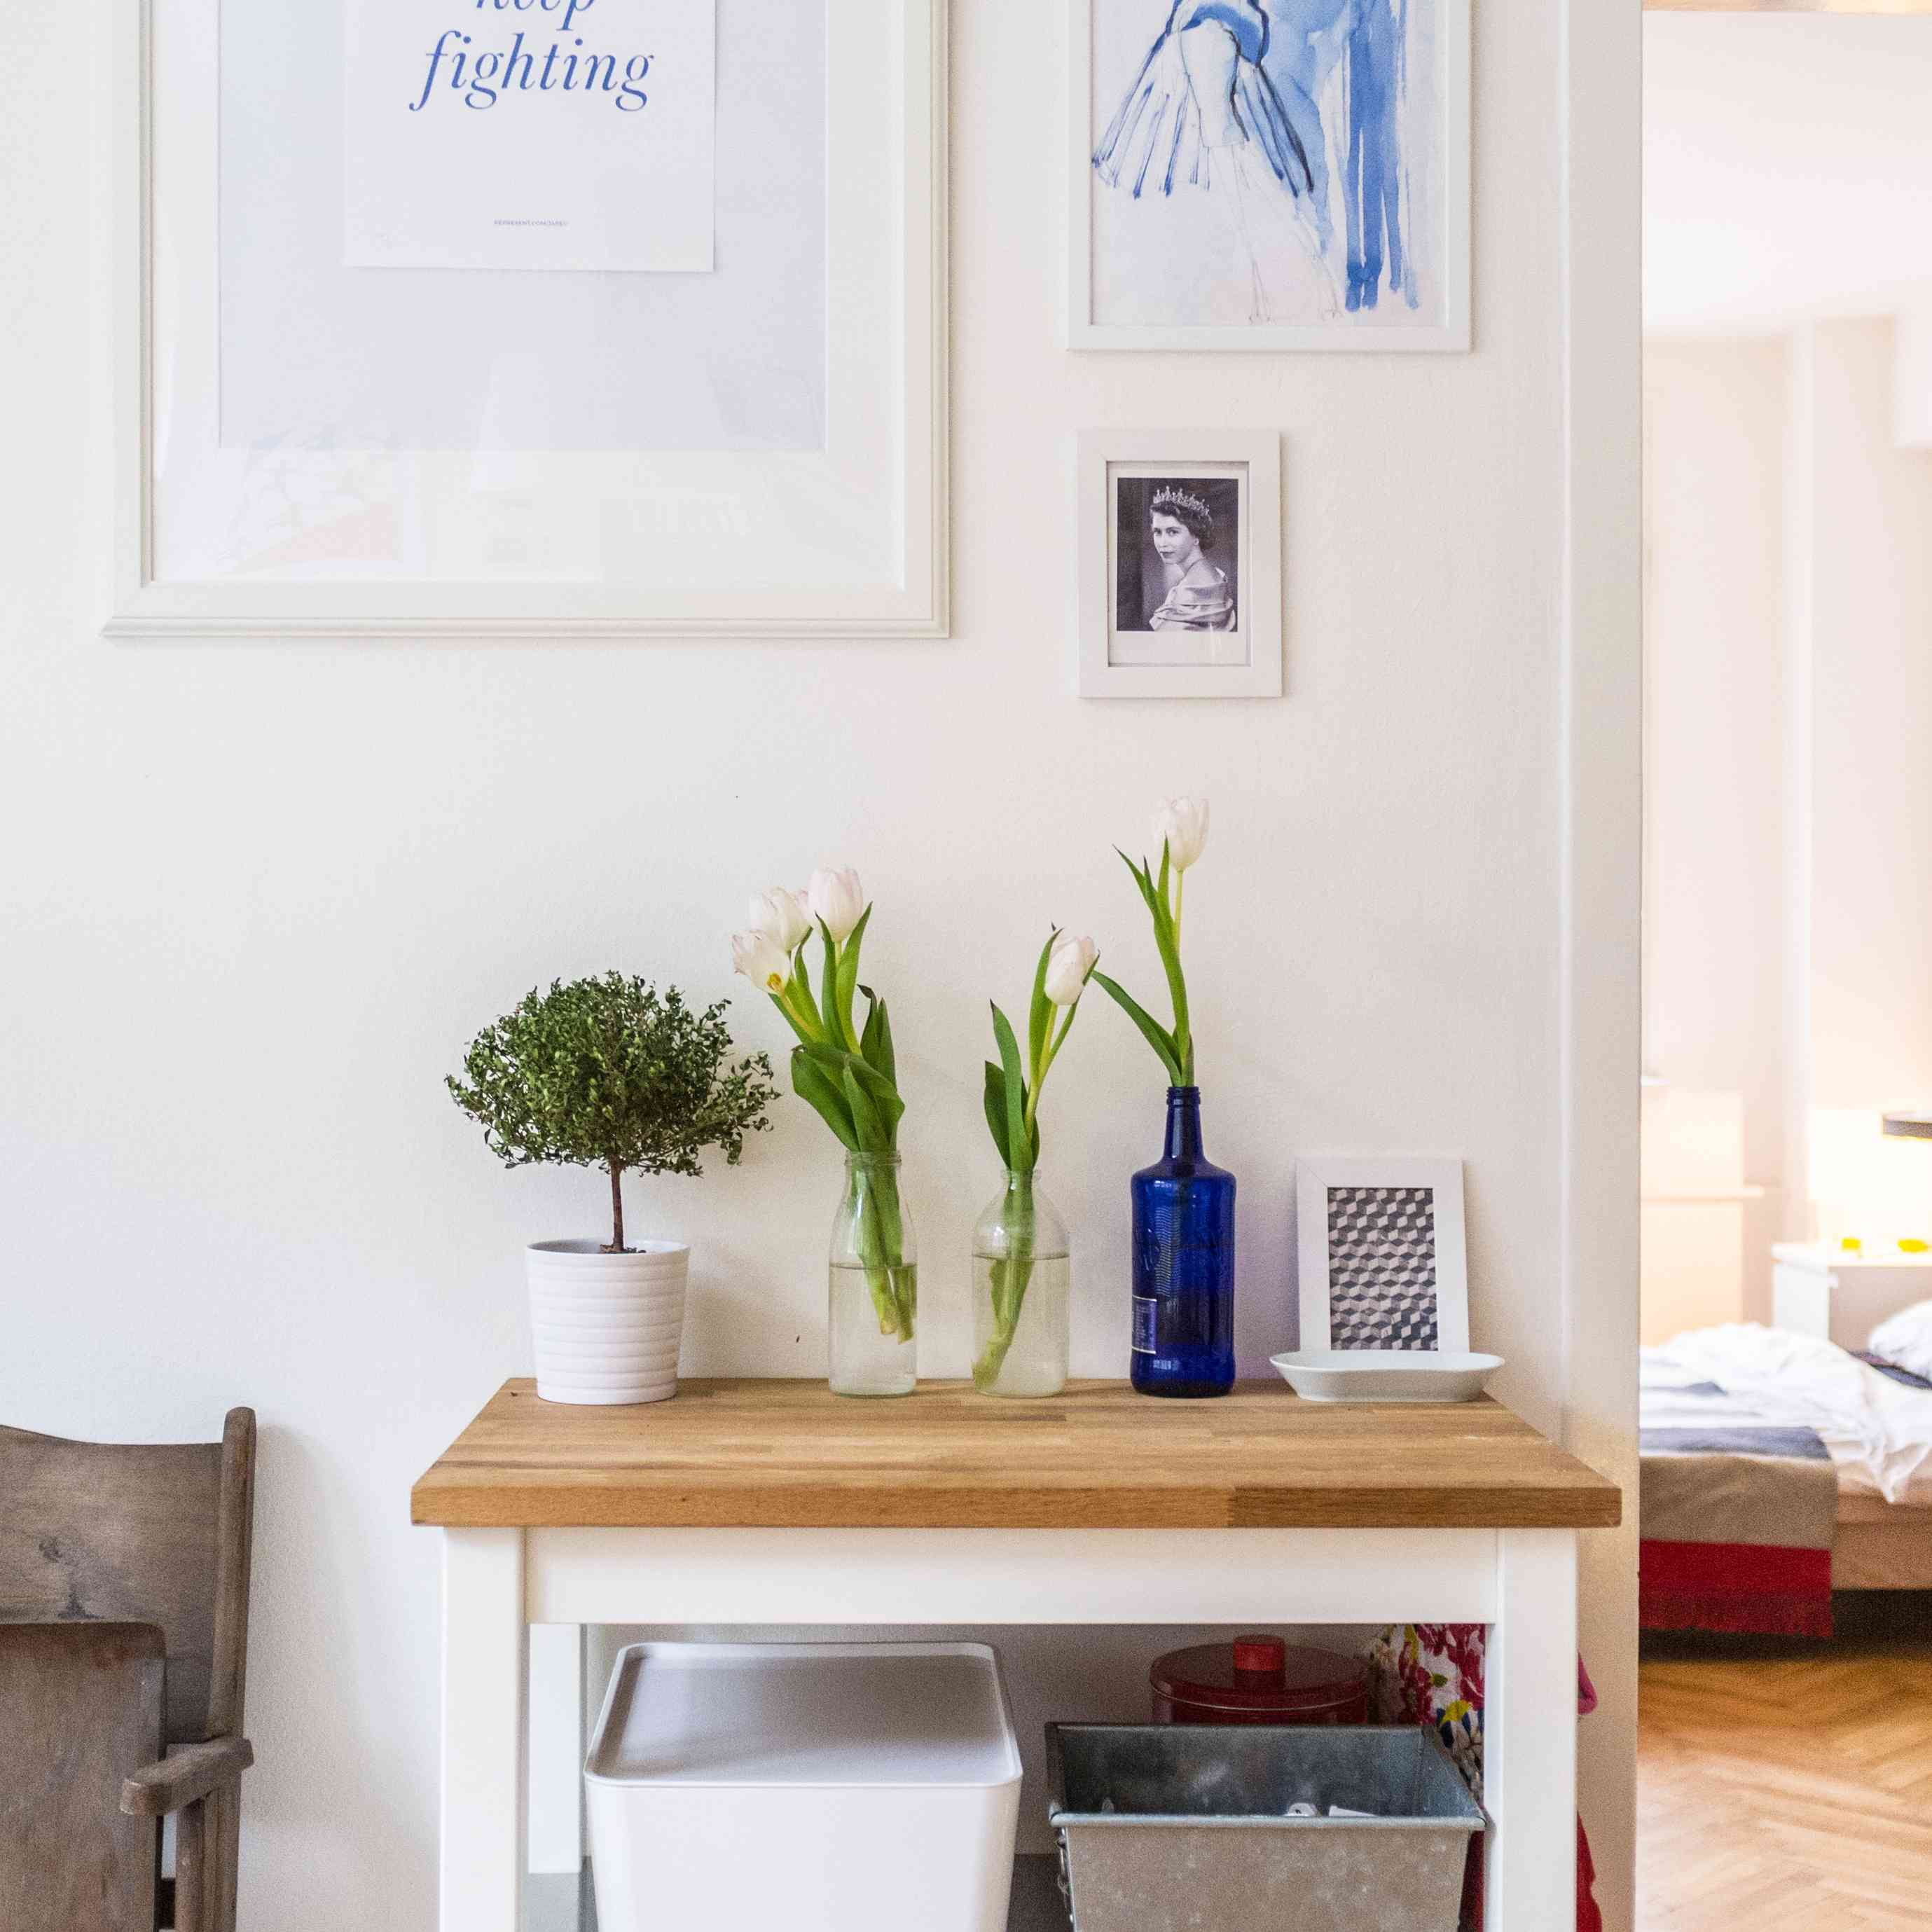 White picture frames with a table and plants